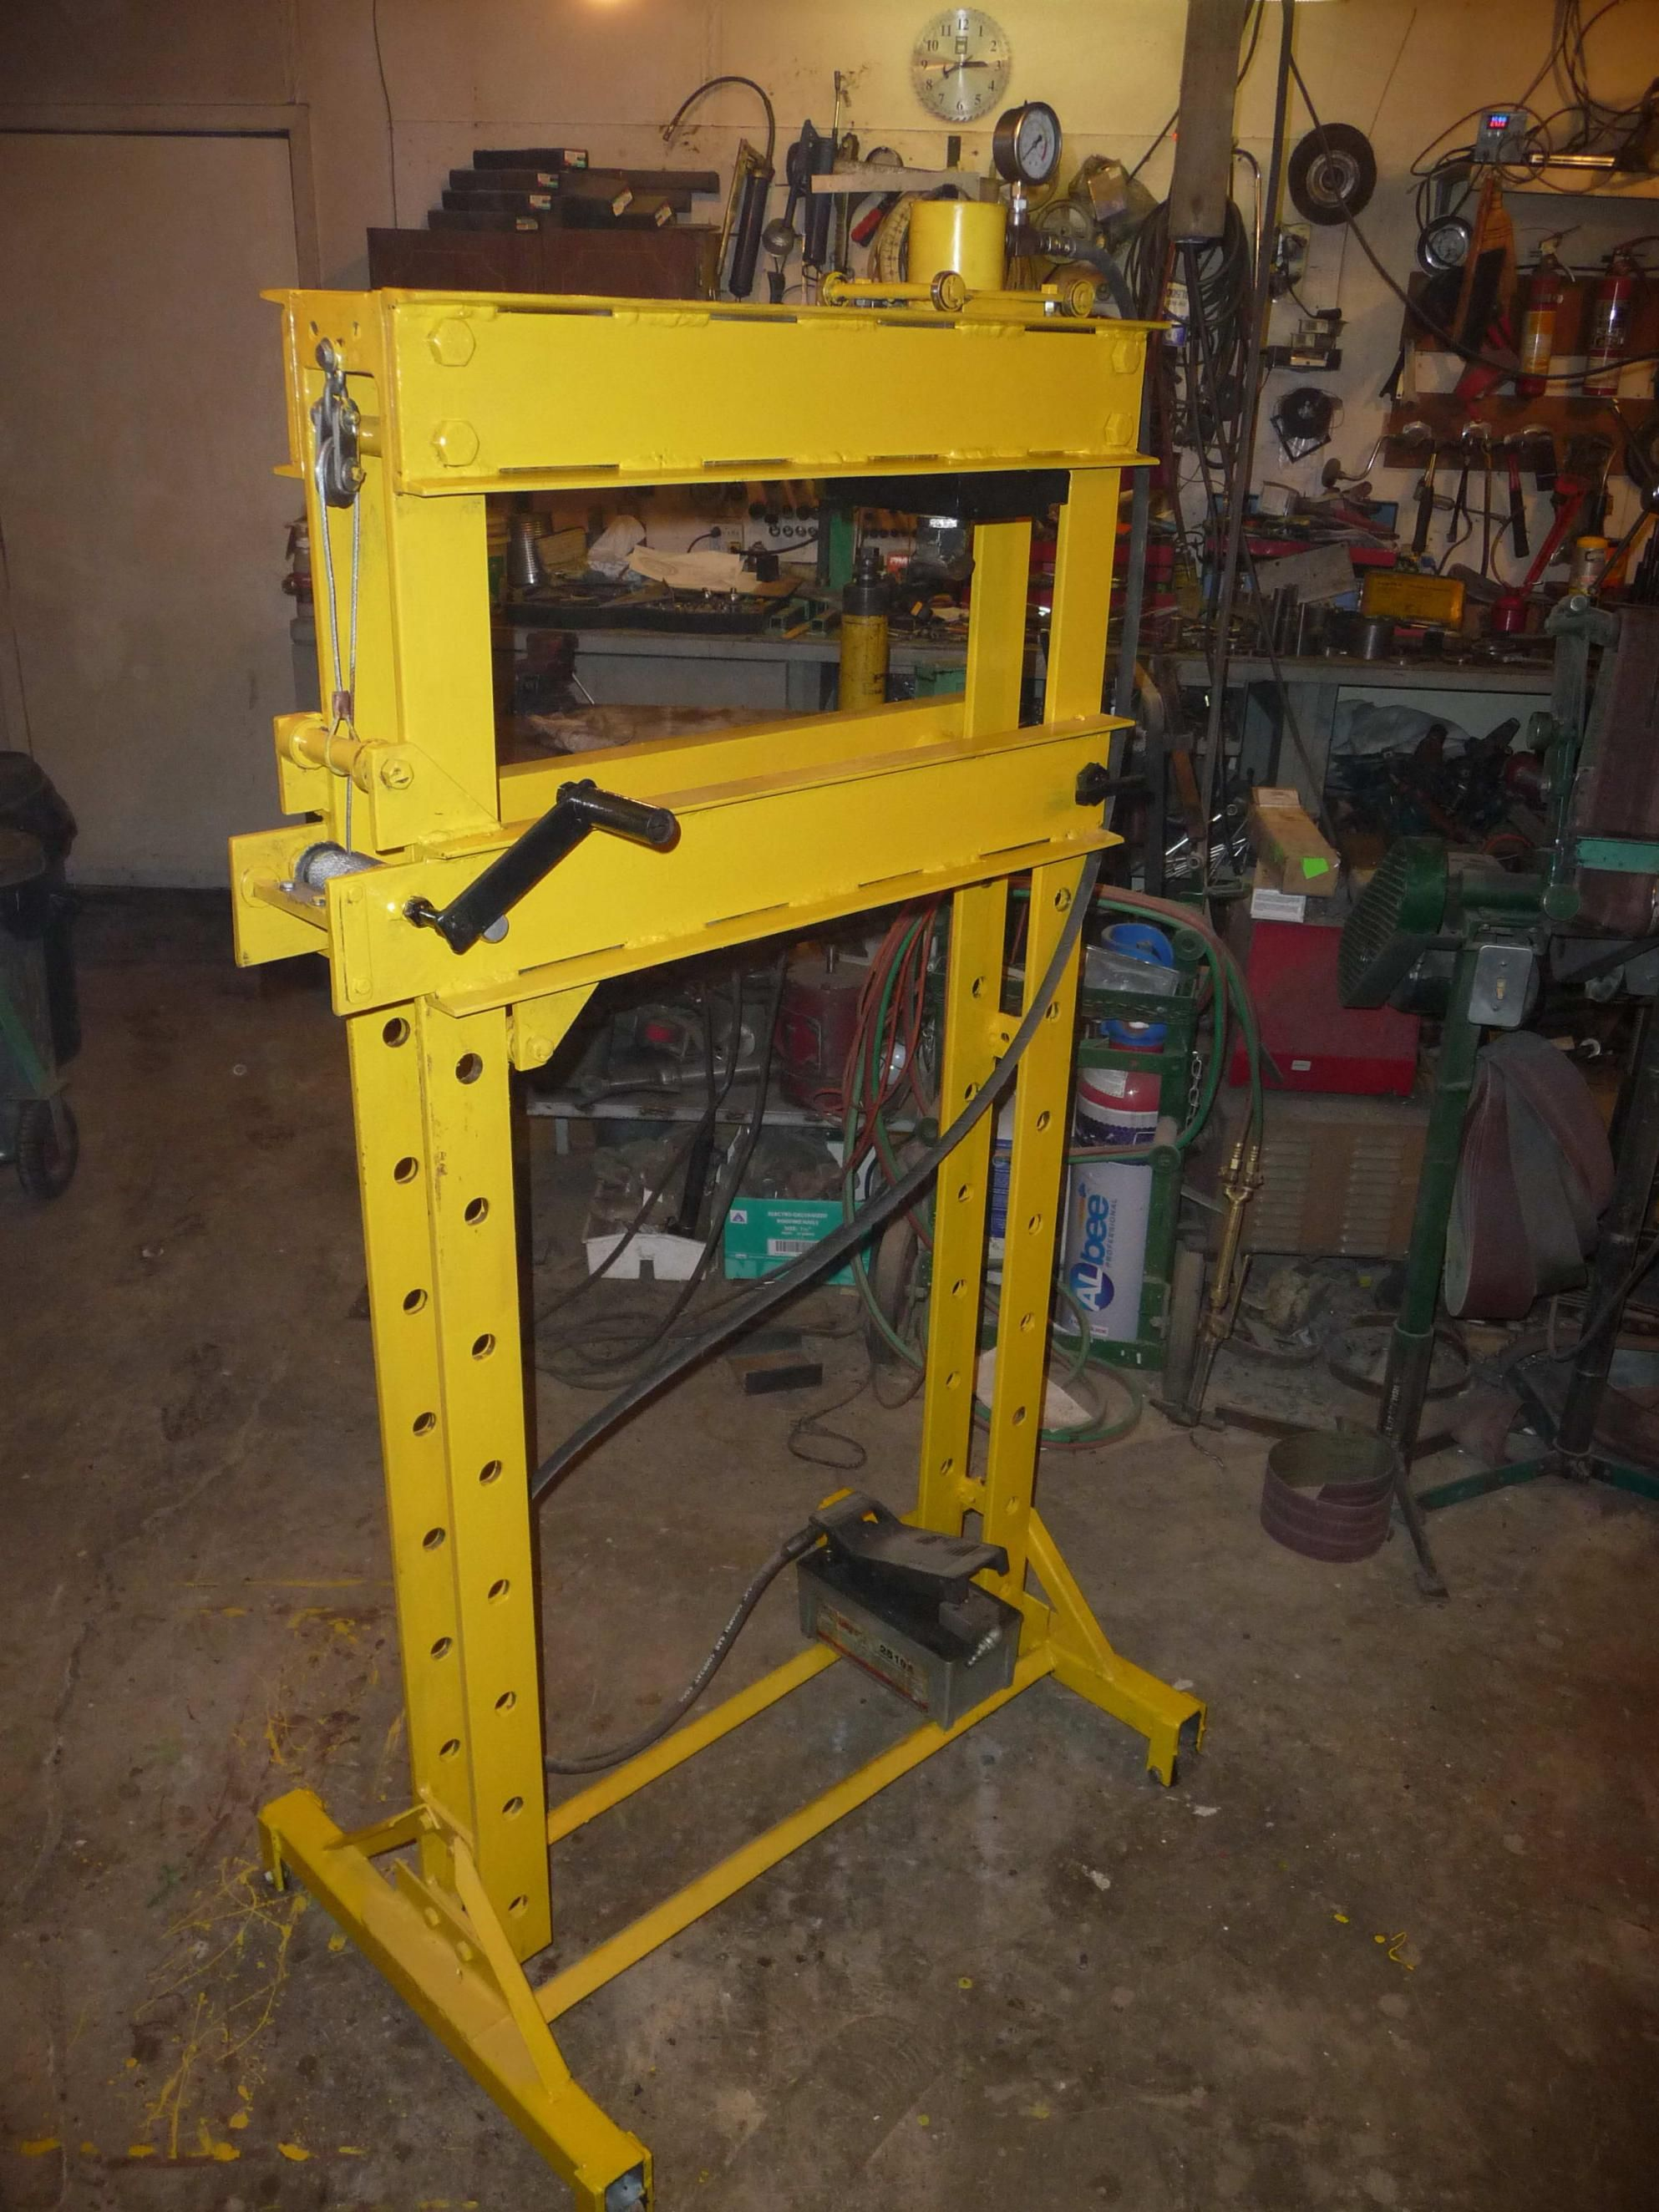 Homemade 25 Ton Hydraulic Press By Glens5 25 Ton Air Over Hydraulicwith Guard And Press Breakbed Winch In 2020 Hydraulic Shop Press Diy Shops Hydraulic